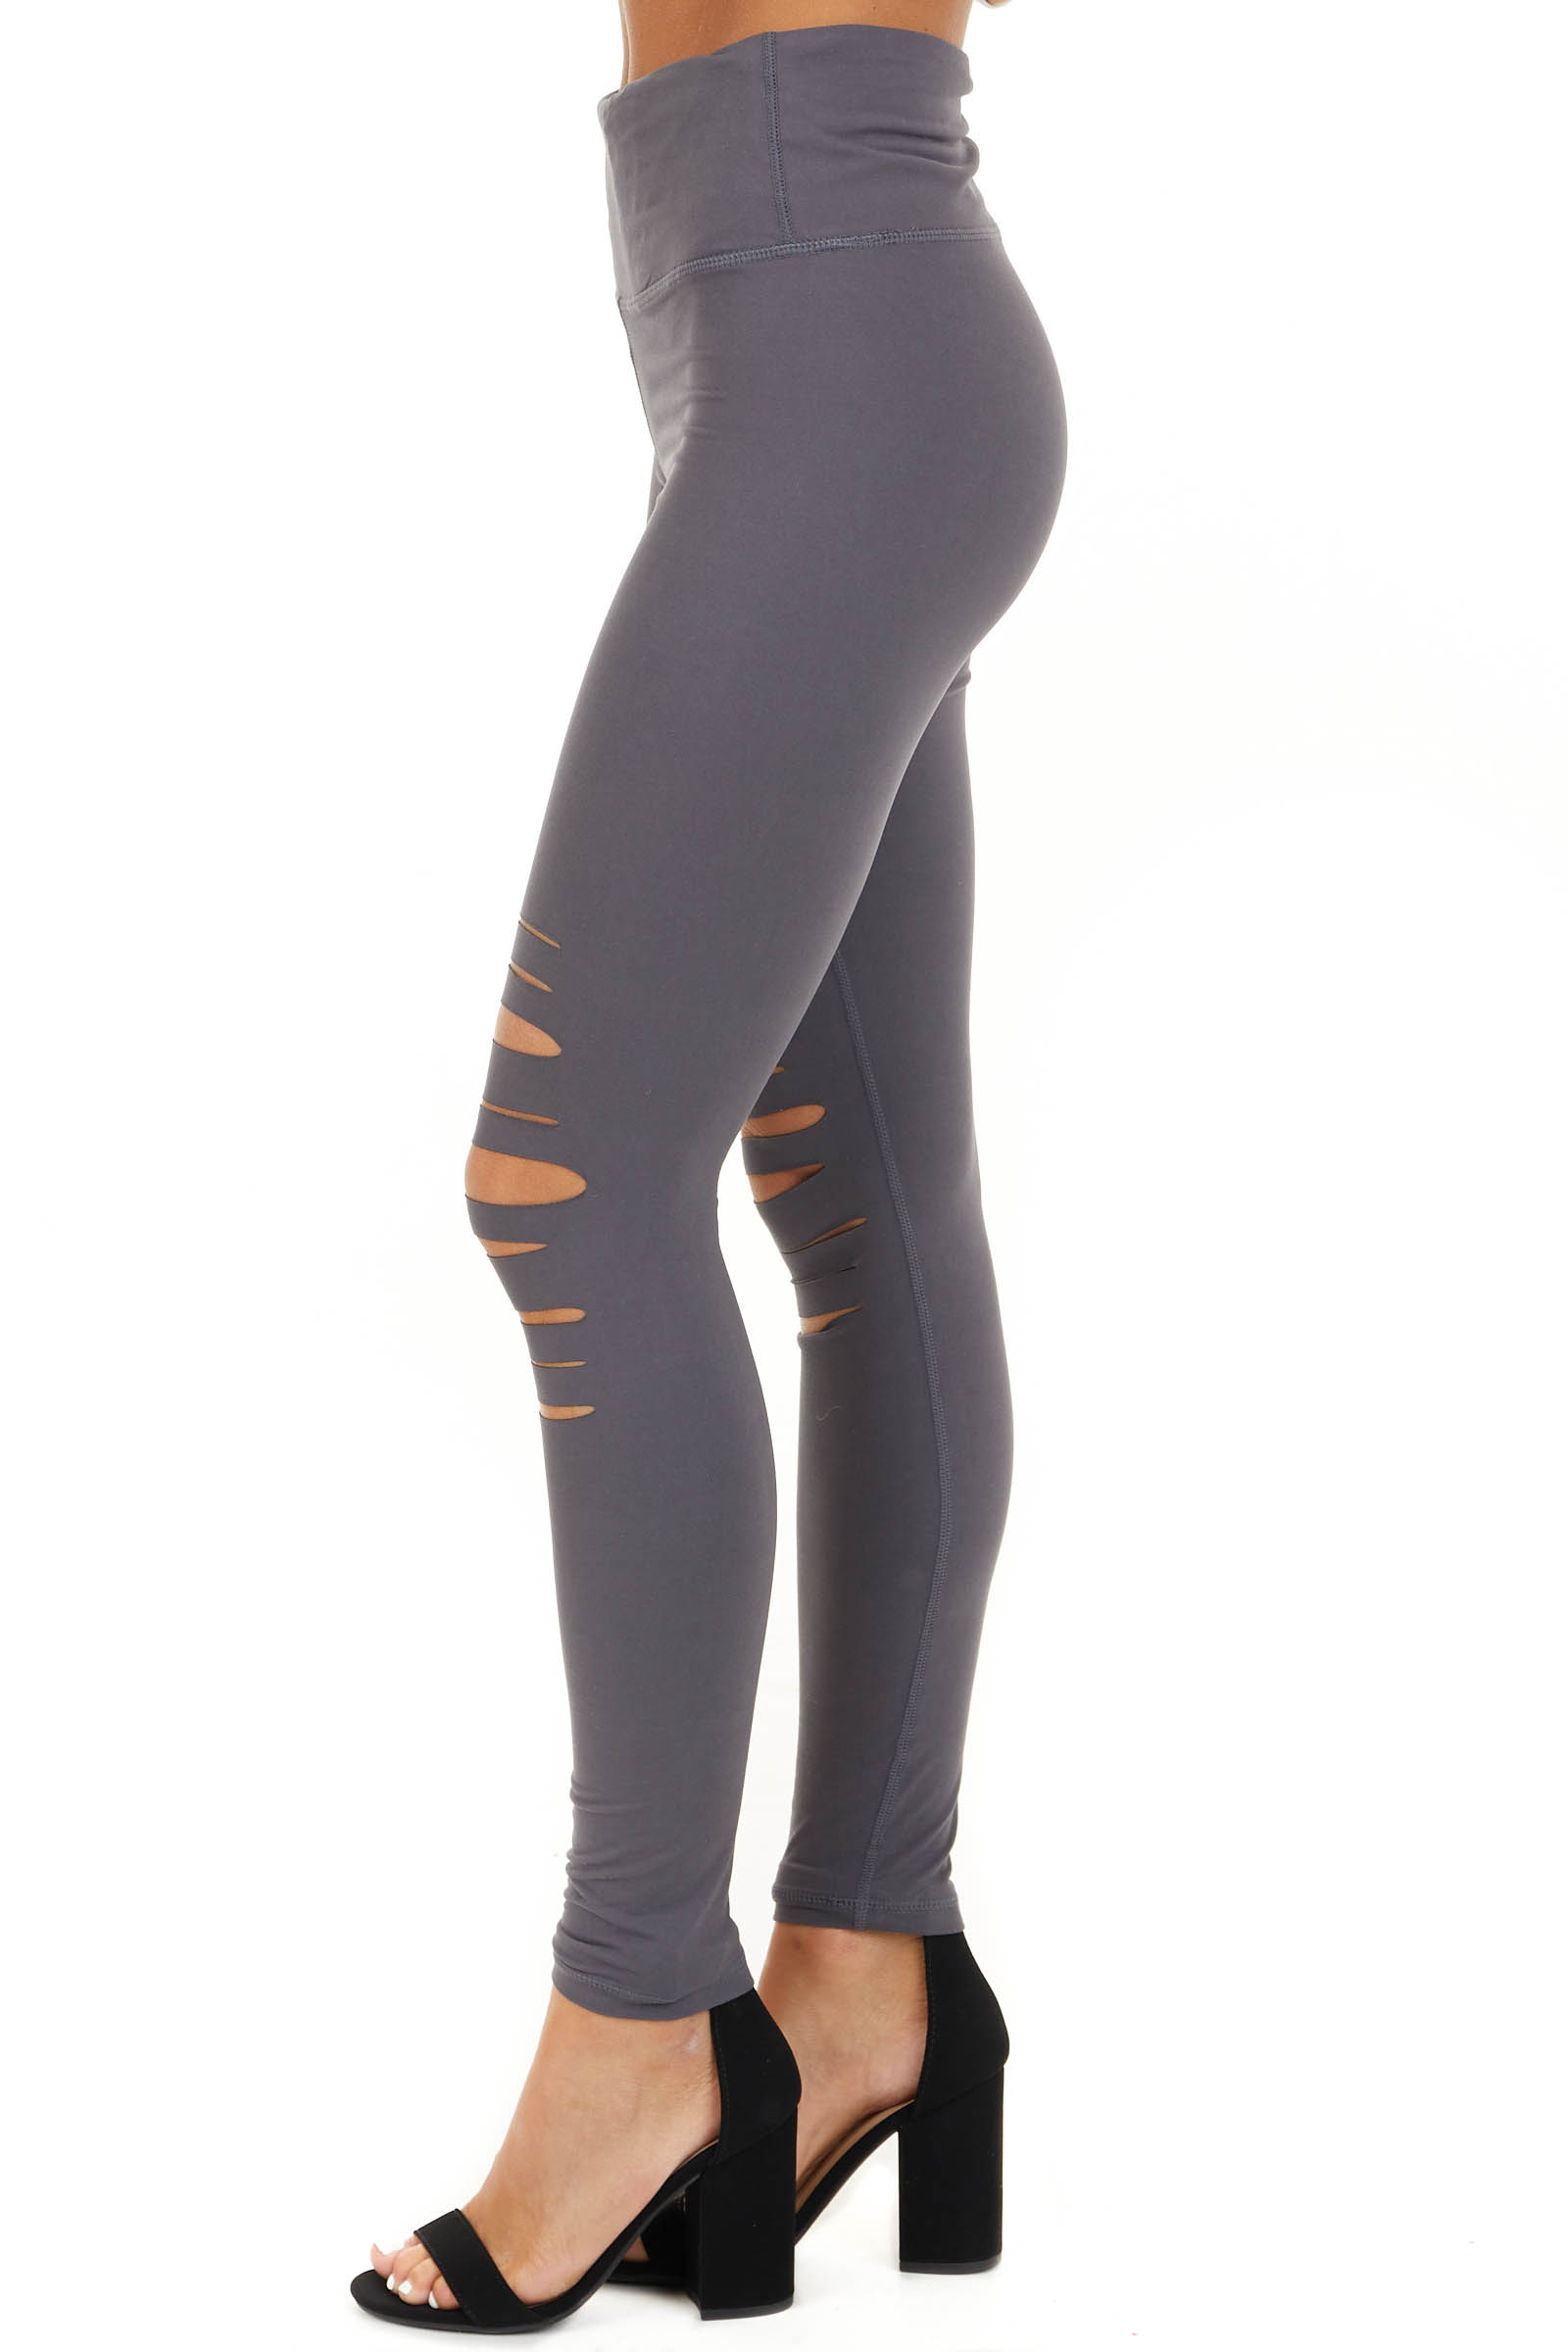 Charcoal Solid Leggings with Laser Cutout Details side view